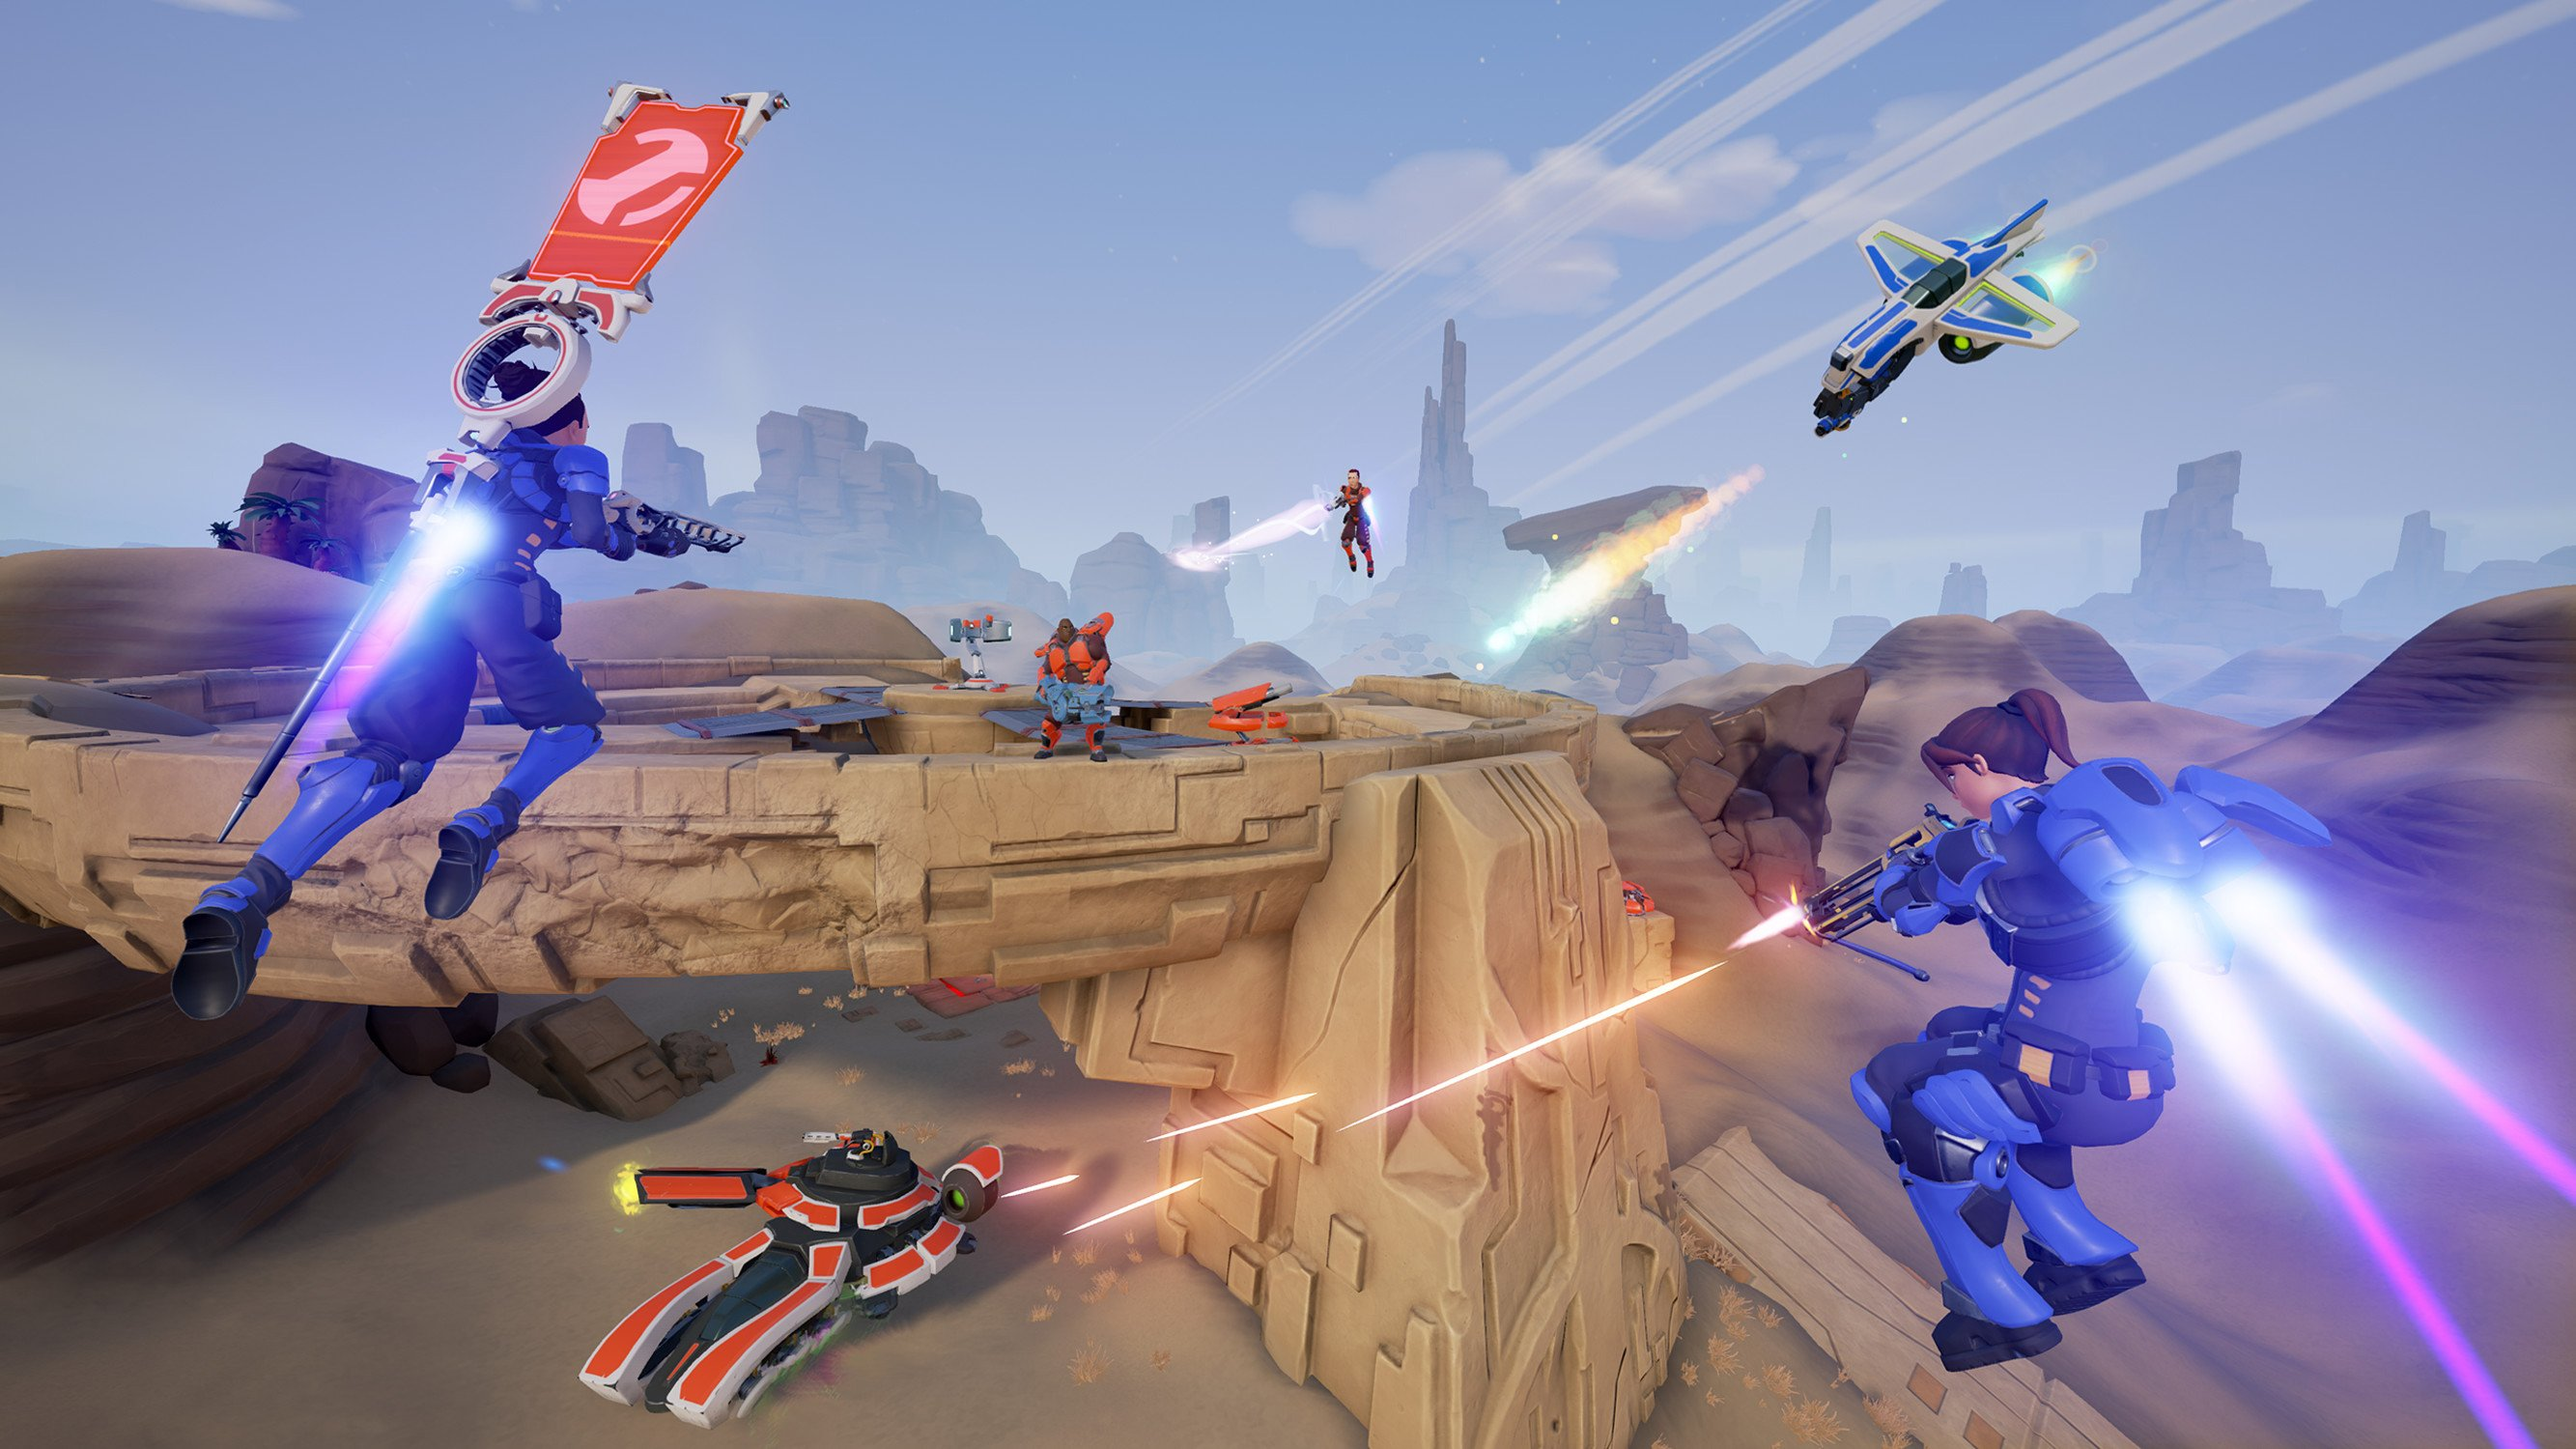 Jetpack shooter Midair is worth a look for Tribes fans screenshot